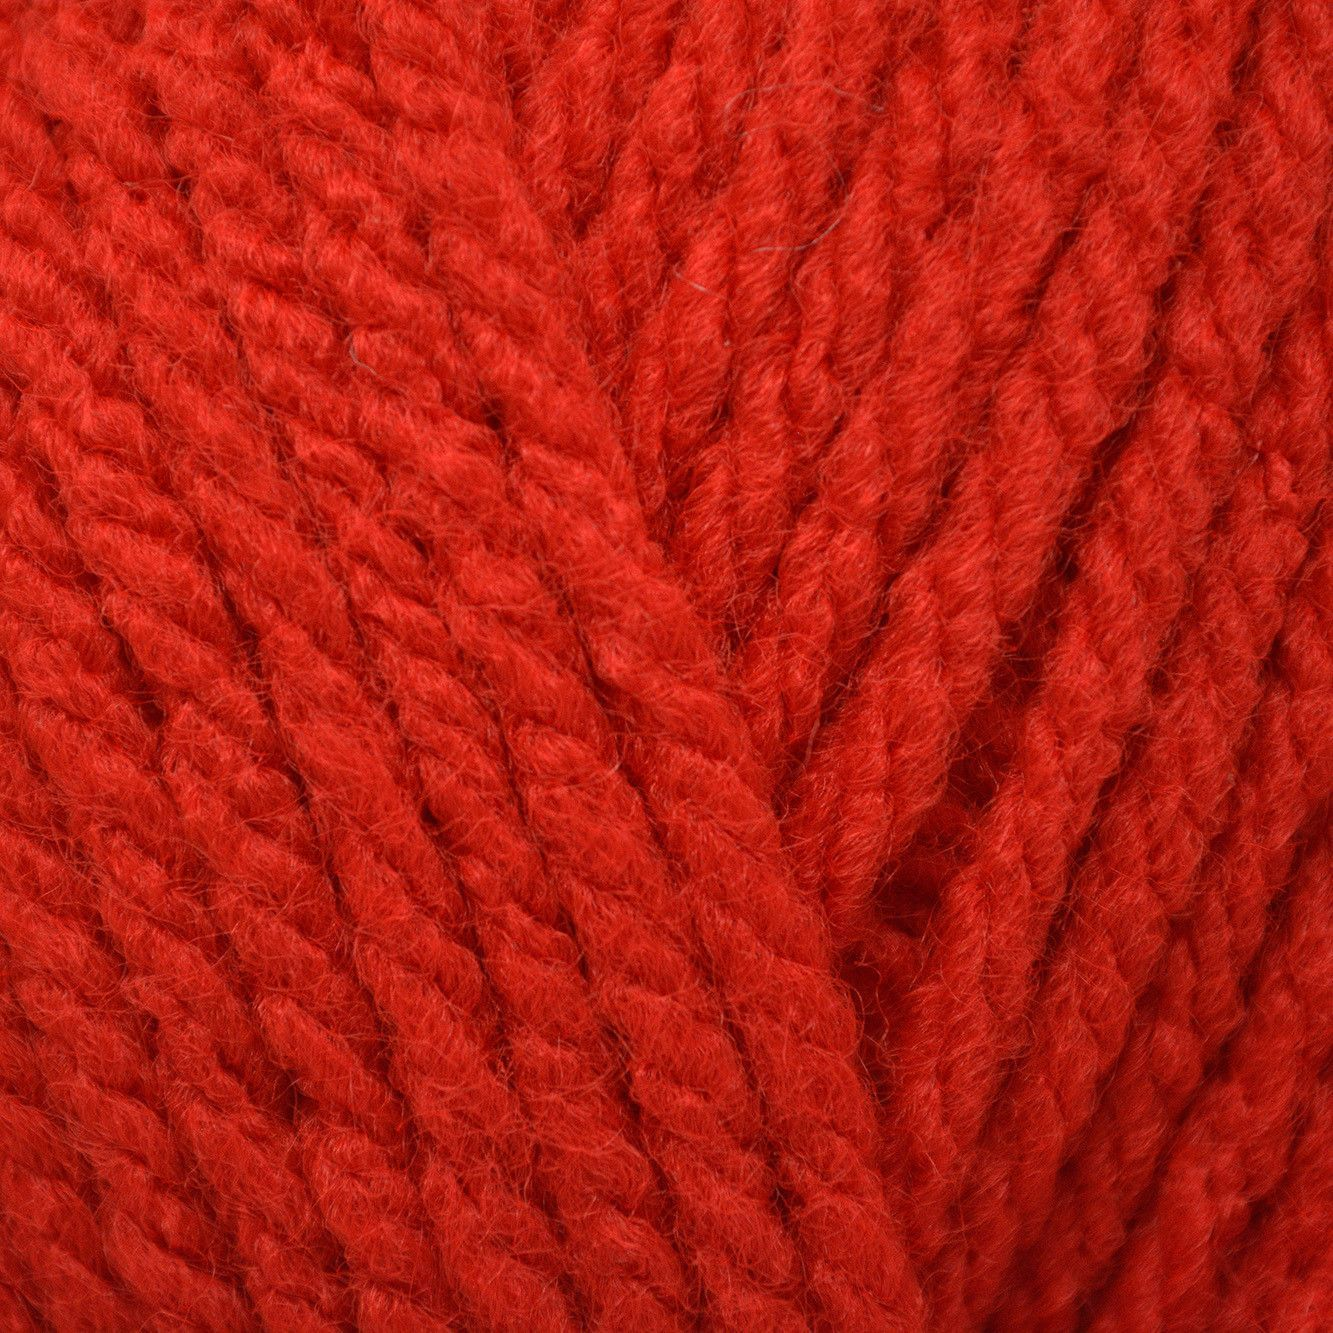 Yarn 100g 977 SIGNAL RED Sirdar Hayfield BONUS CHUNKY Knitting Wool